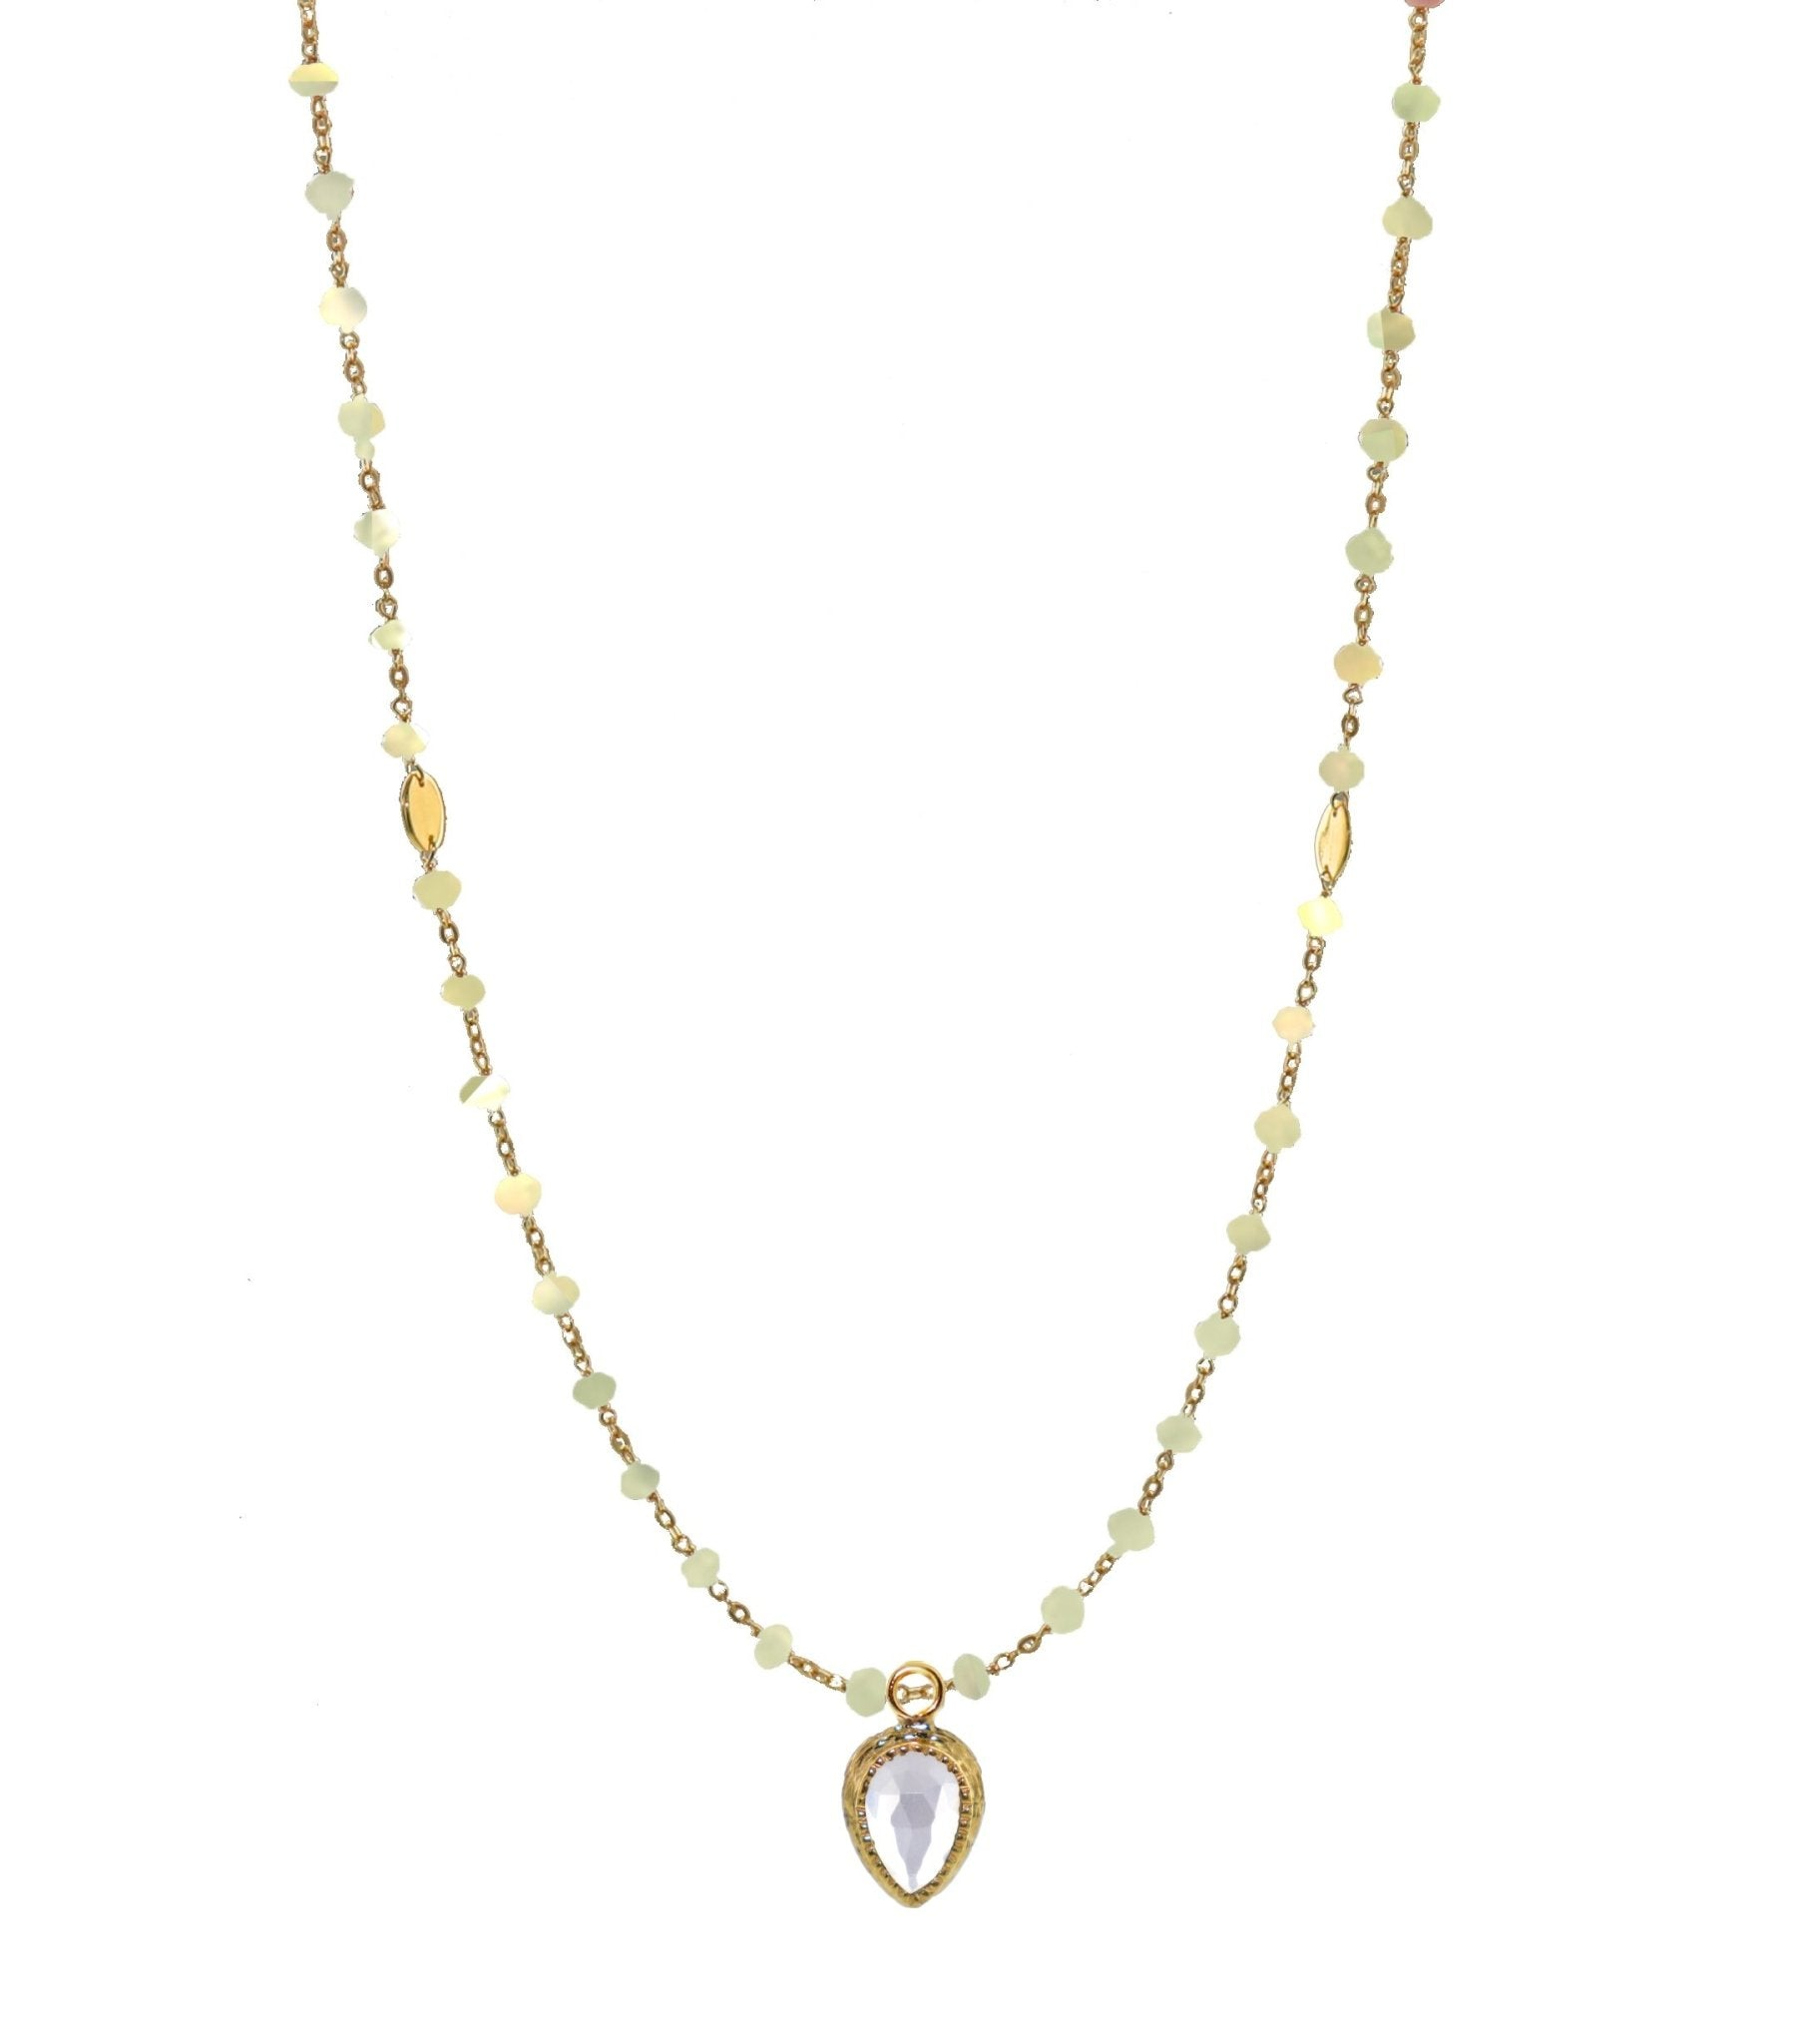 "ICONIC LONG BEADED NECKLACE - RAINBOW MOONSTONE & GOLD 34"" - SO PRETTY CARA COTTER"